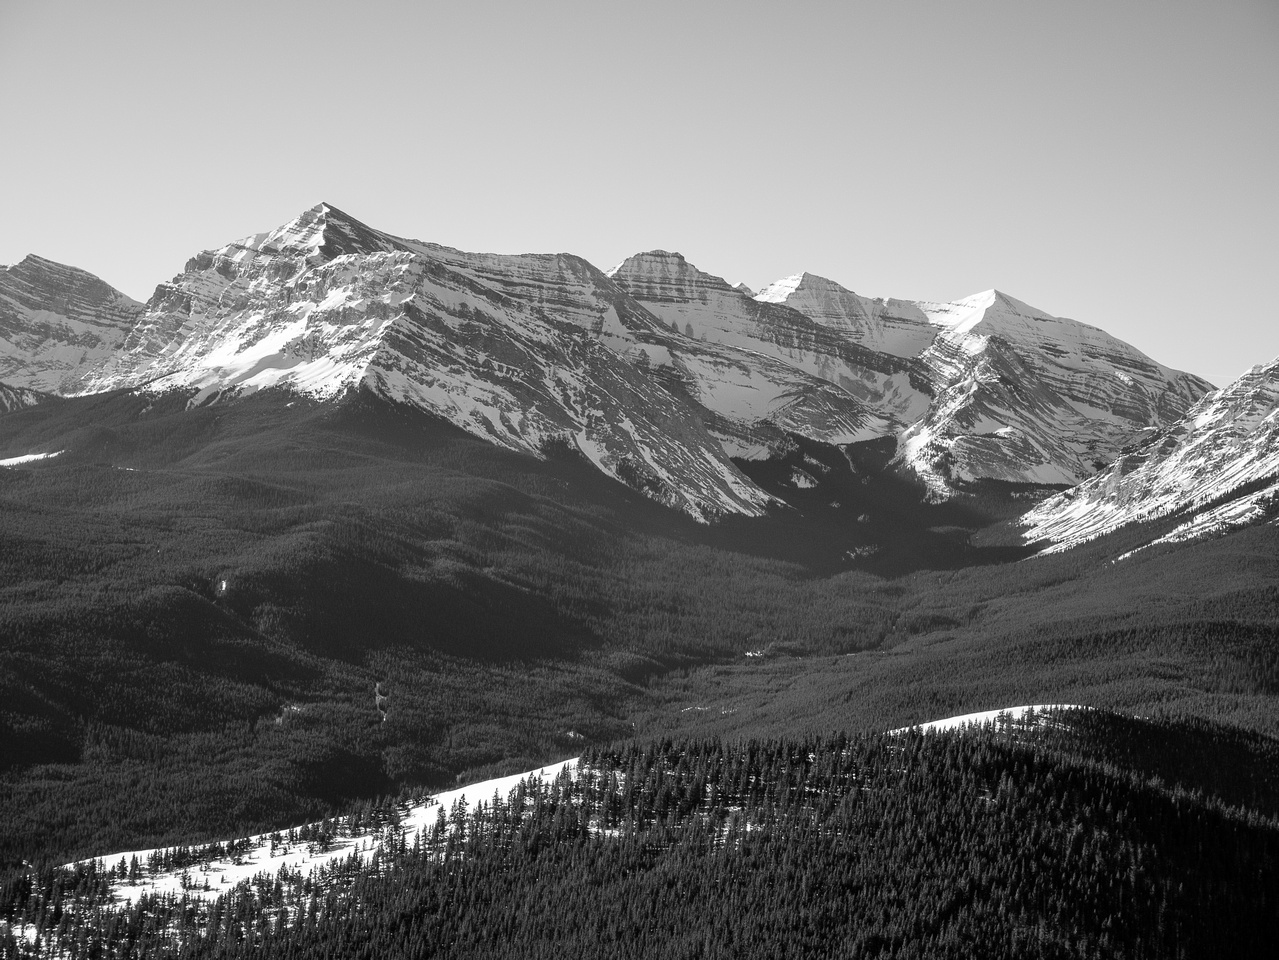 Mount Baril and Cornwell - Fording Pass to the right.